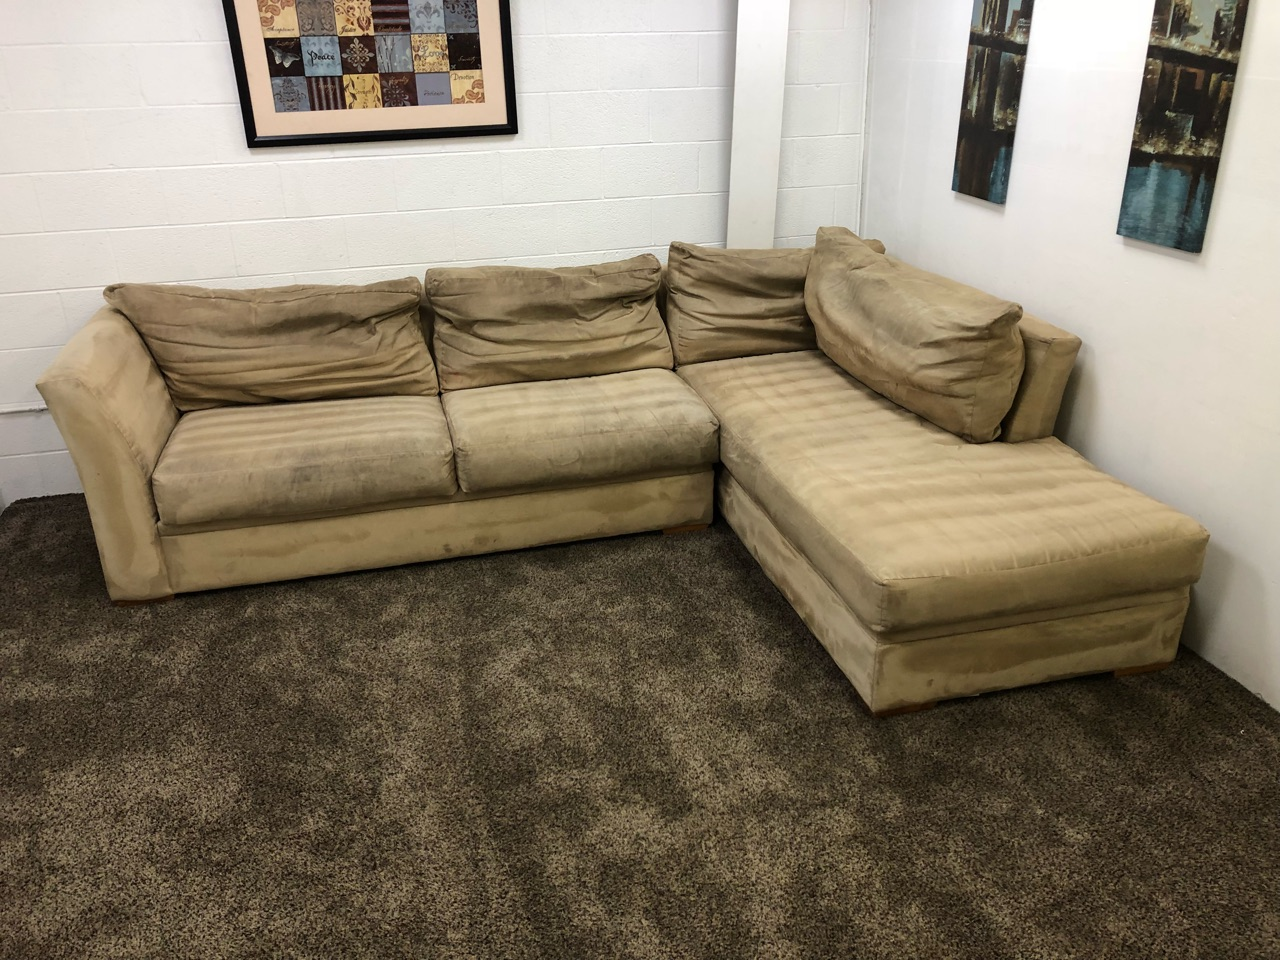 Merveilleux Refurbished 2 Piece Tan Sectional Sofa Set W/ Chaise Lounge